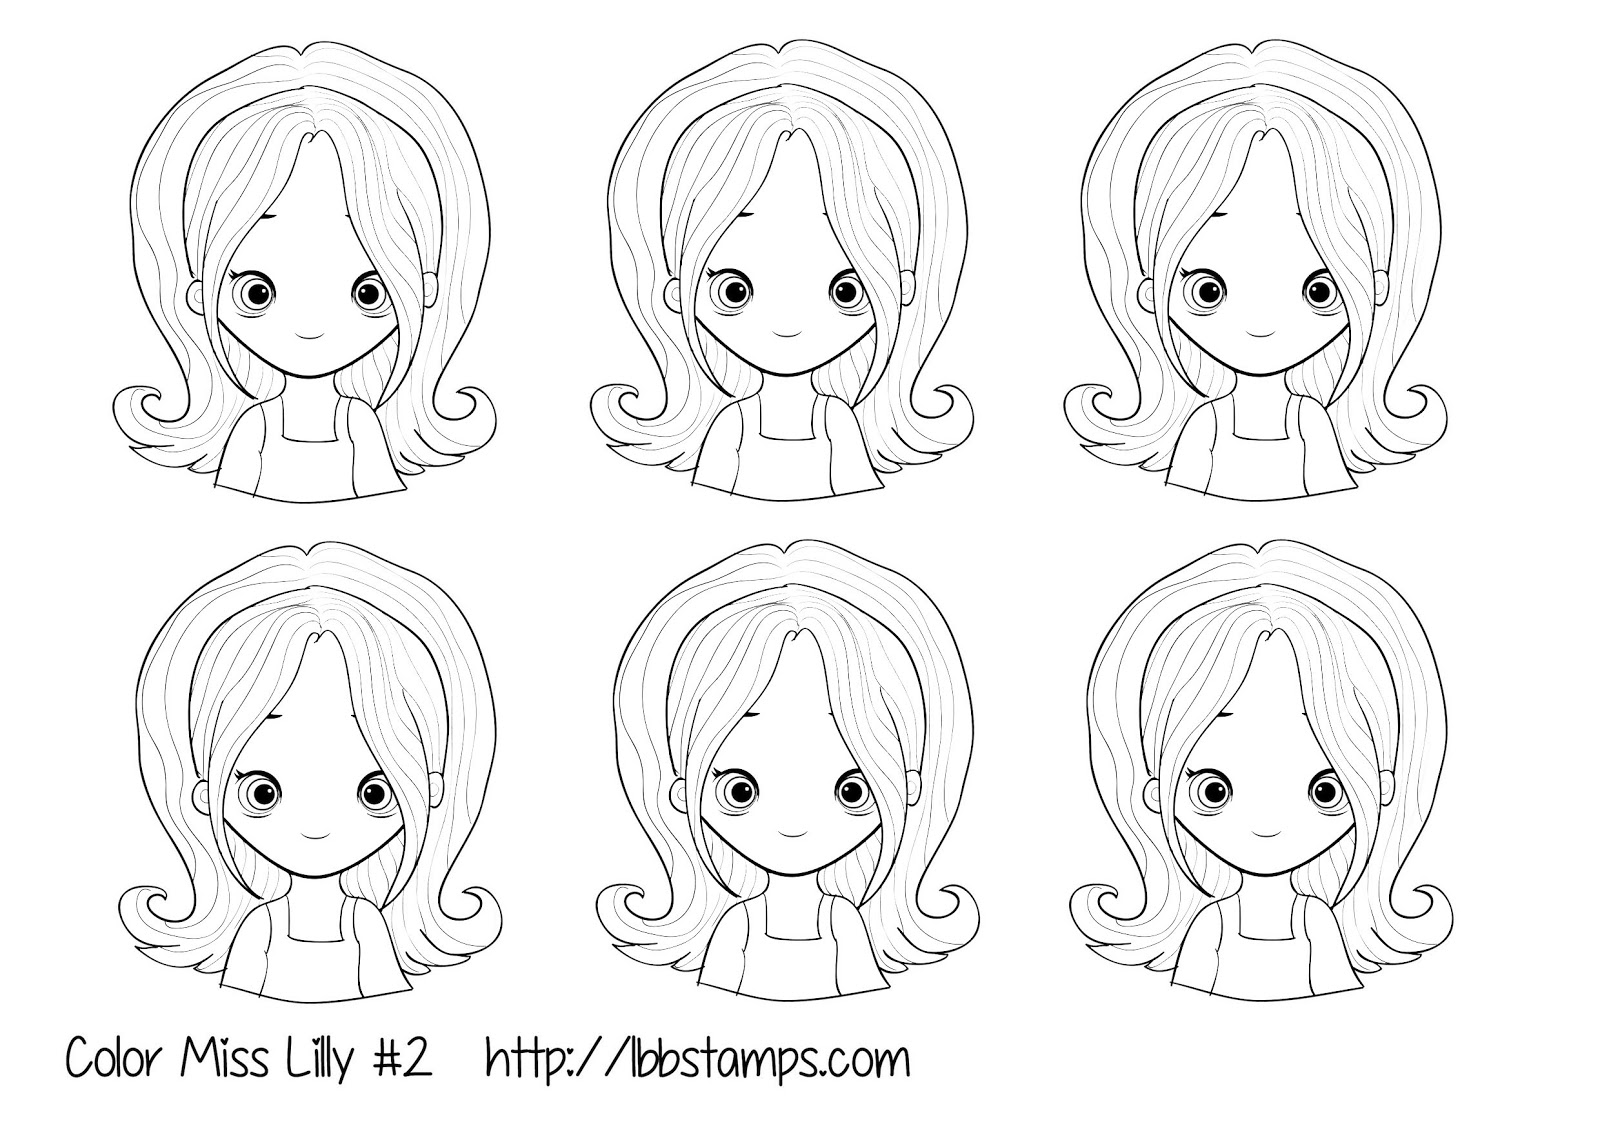 Little Blue Button Stamps: Free templates for copic coloring